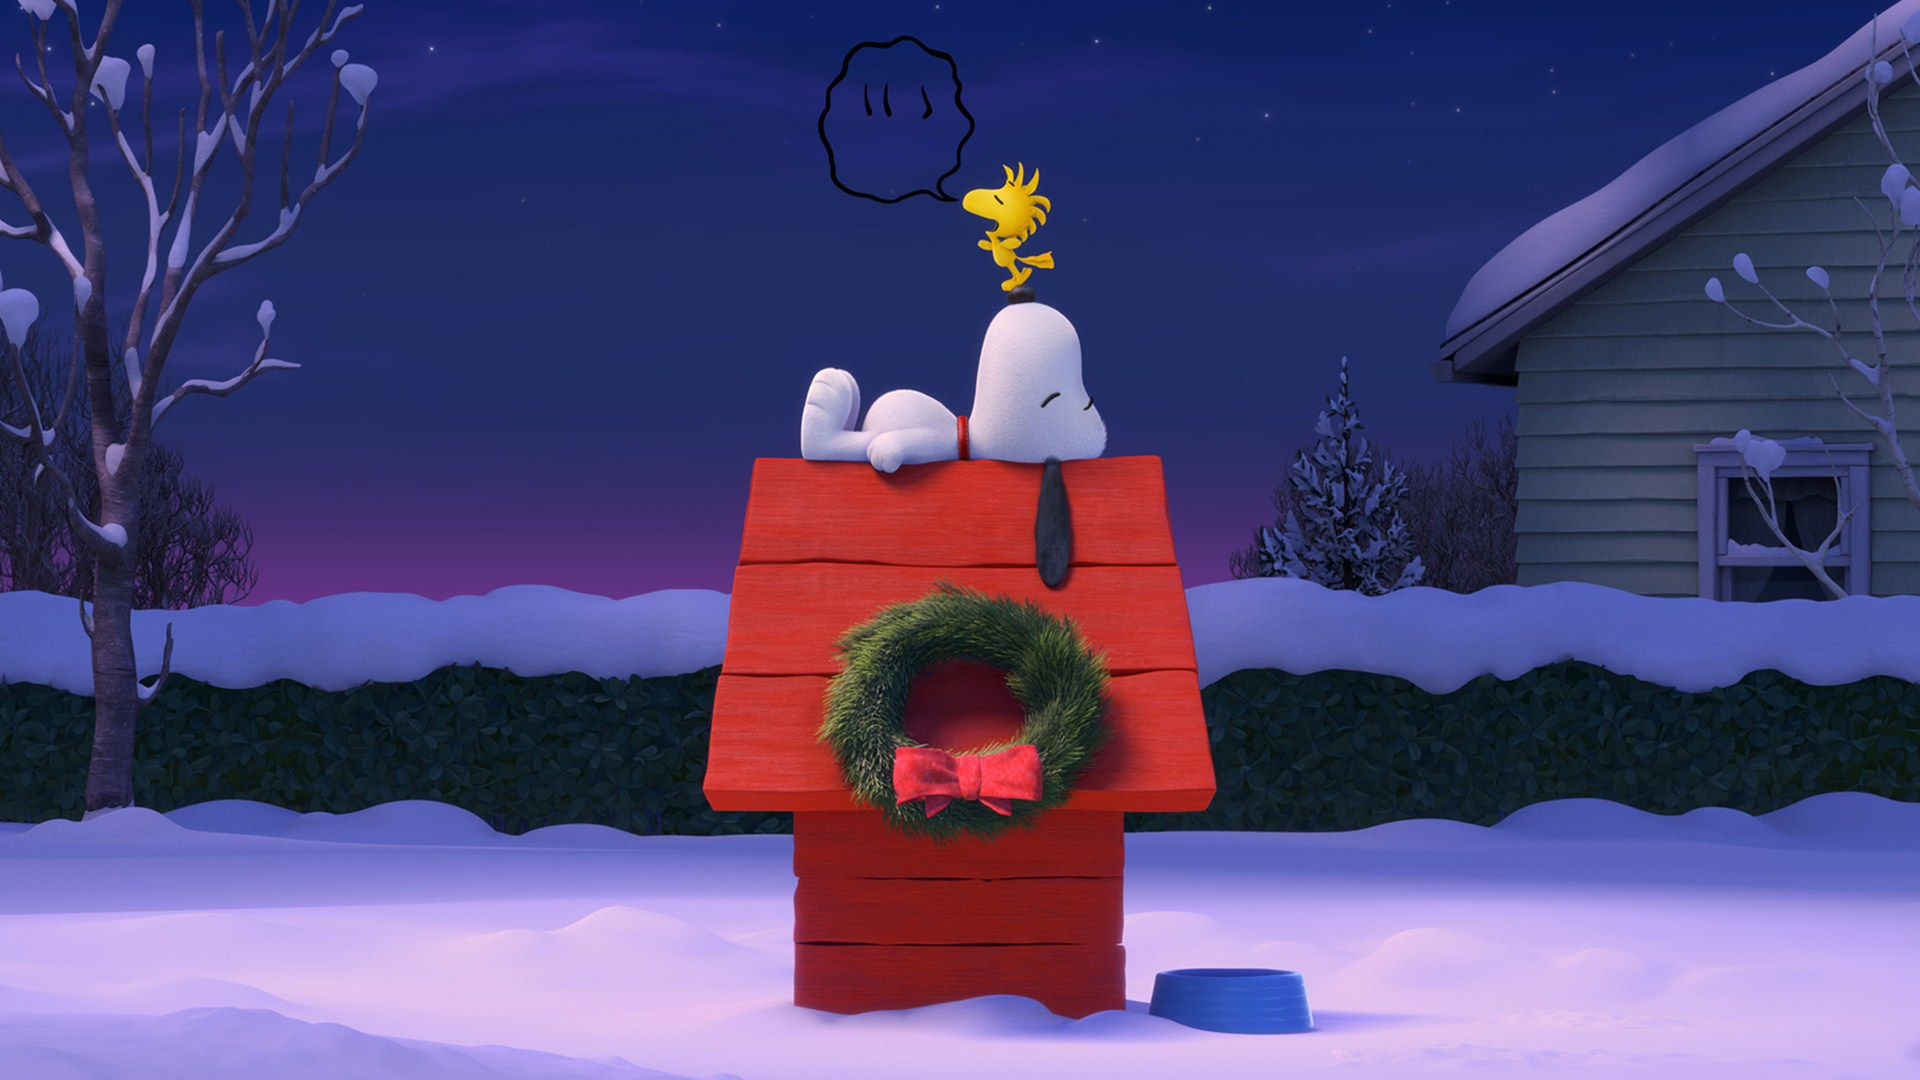 Snoopy-Background-WIN-THEMES-wallpaper-wp34010798